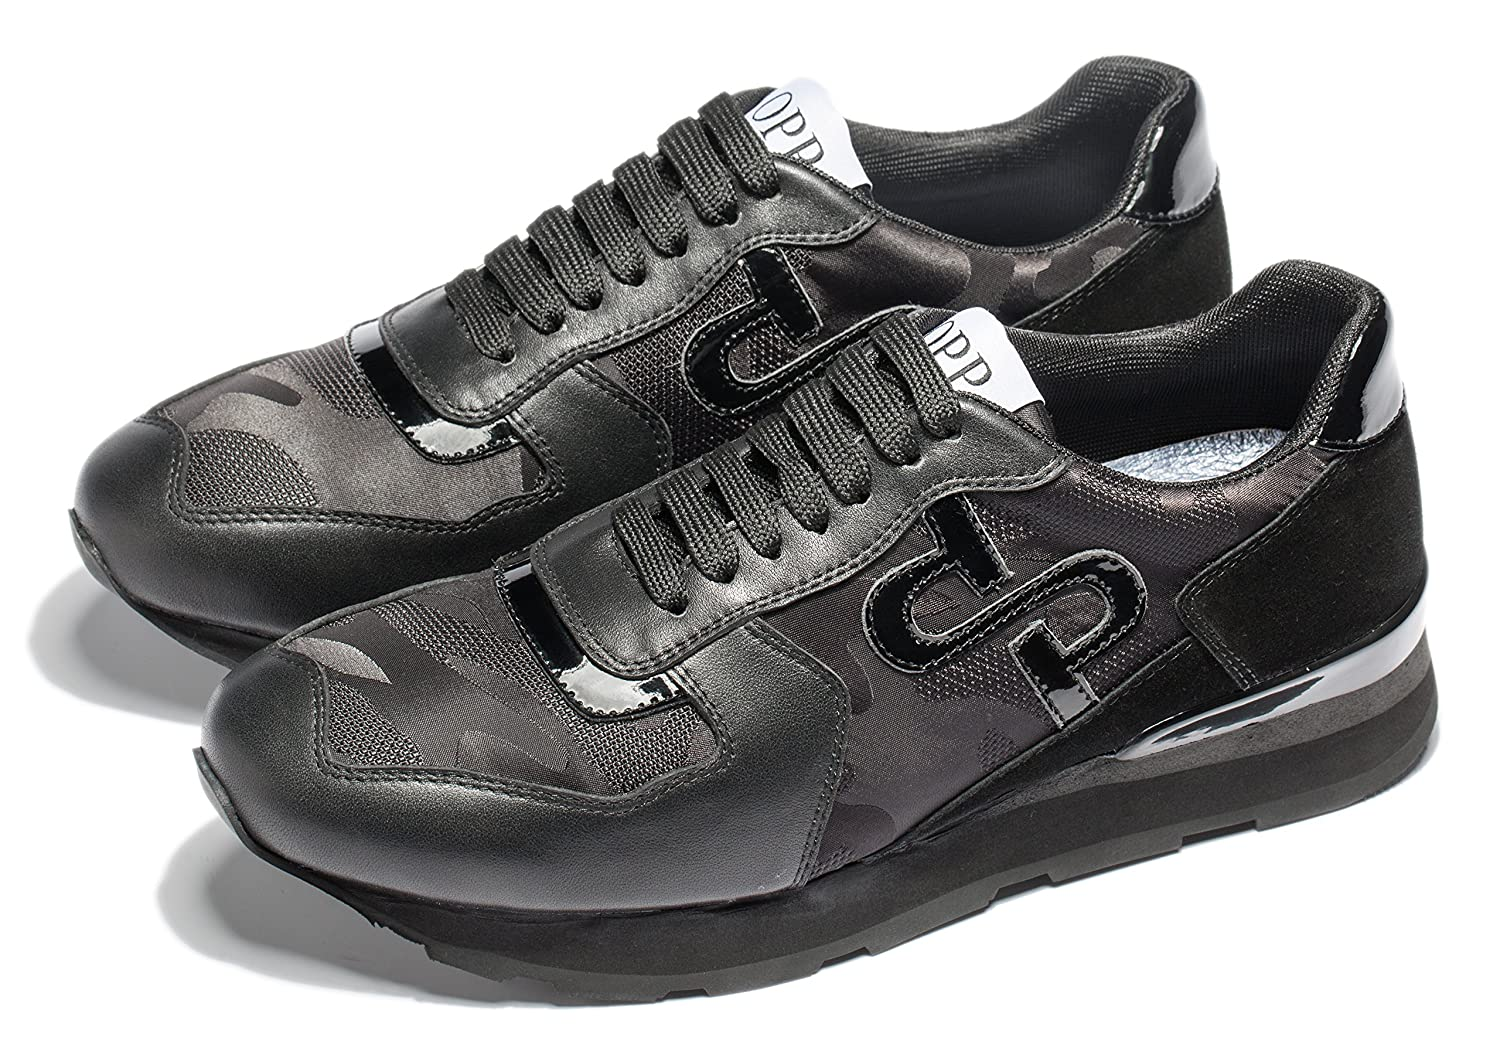 OPP Men's Fashion Leather Sports Sneaker Lace-up Rubber Soft Sole Casual Shoes 9.5  M US|Black